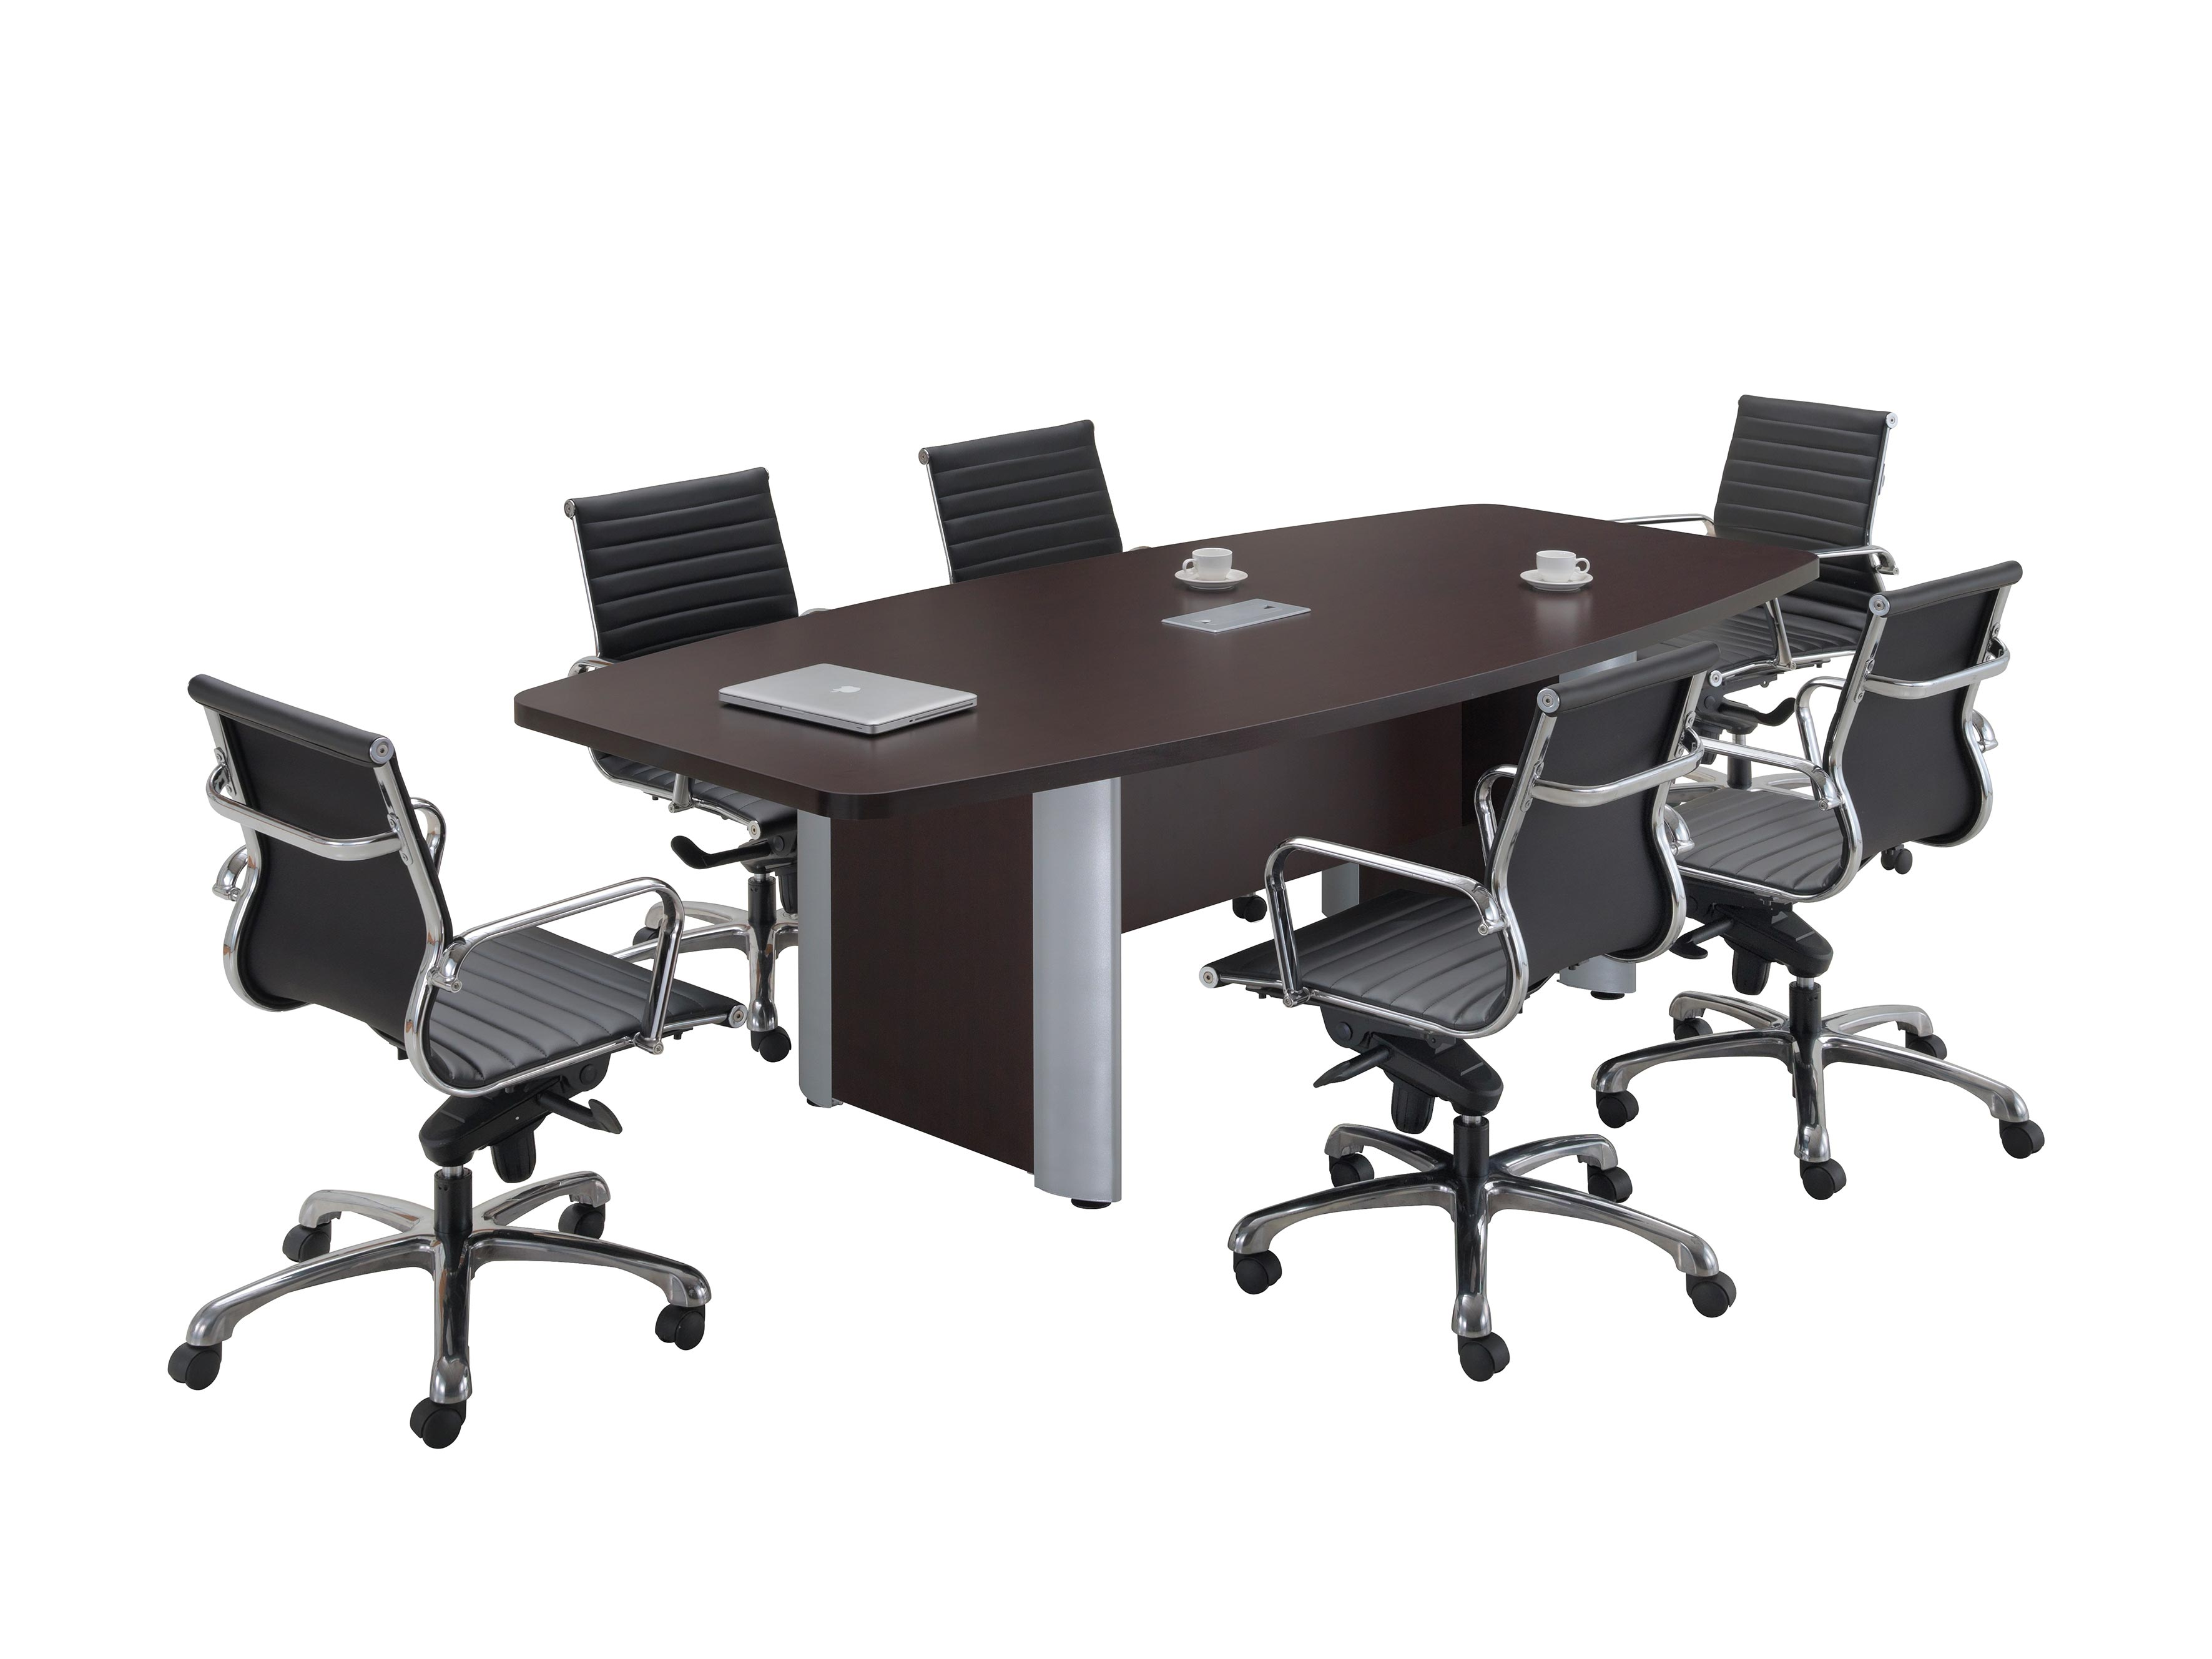 Boat Shaped Conference Tables Harmony Collection